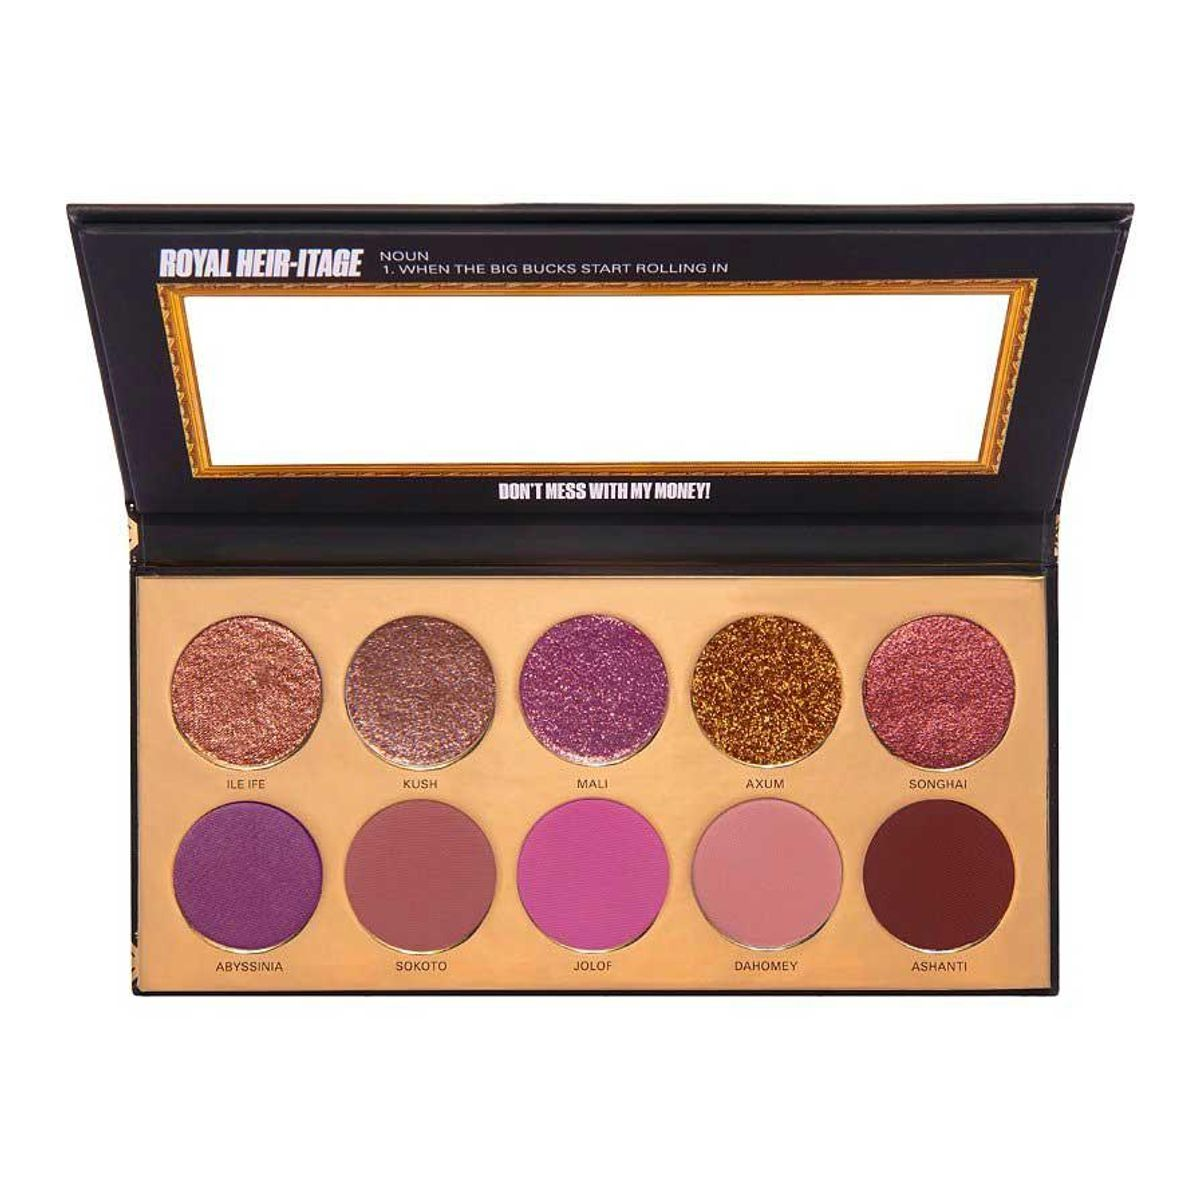 uoma beauty black magic coming 2 america royal heir-itage color palette